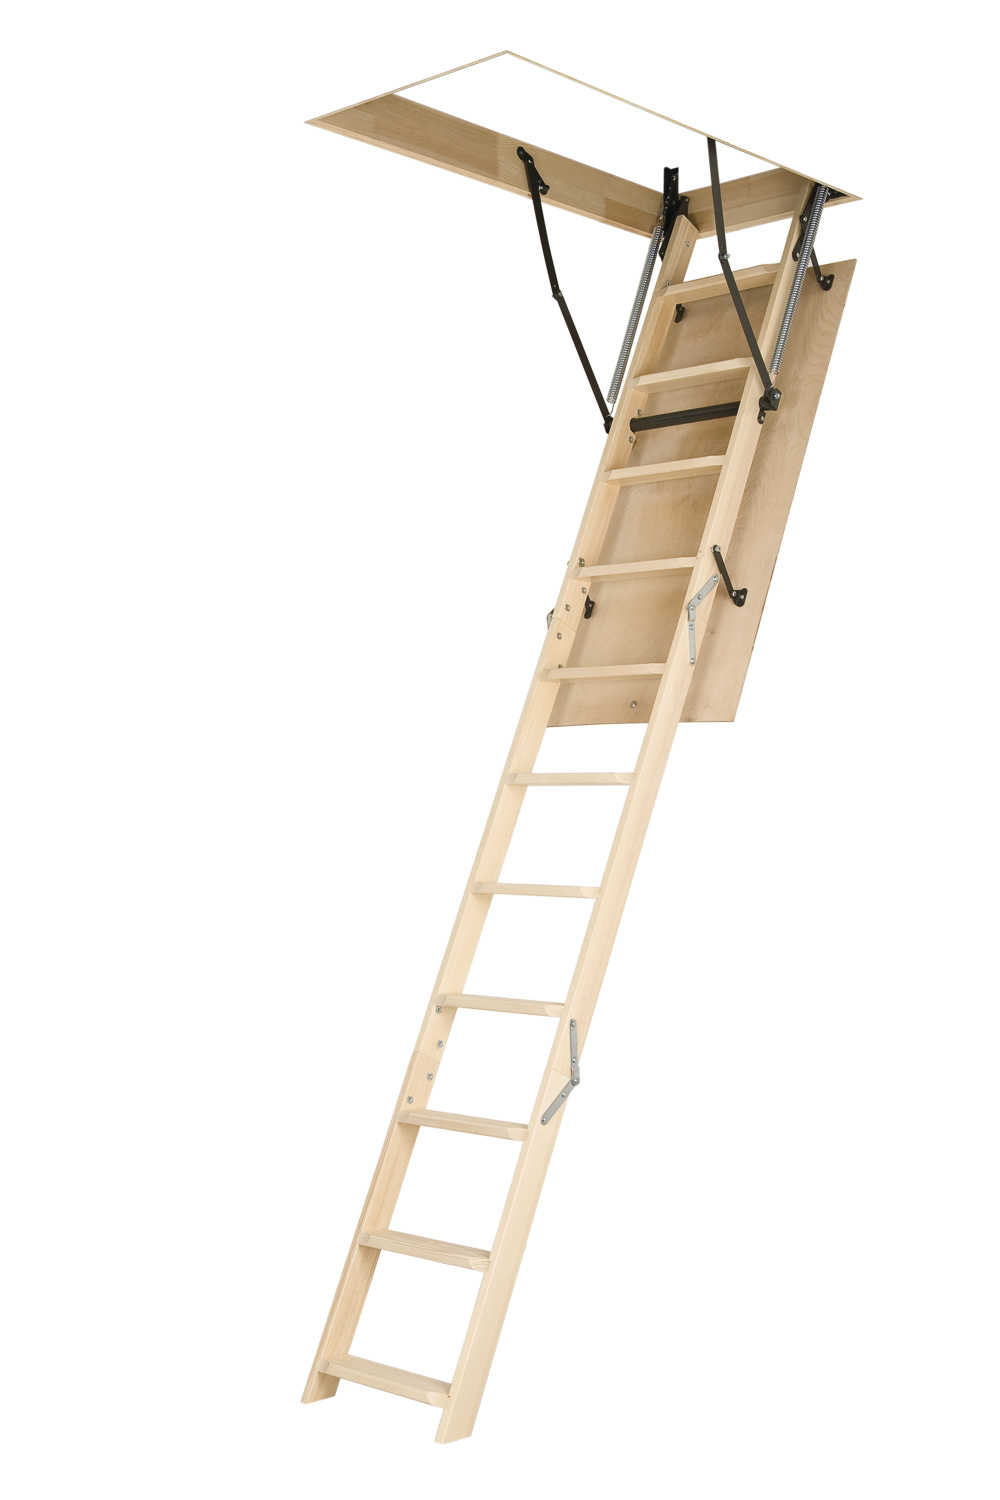 25'x47' Fakro Wooden Folding Ladder (LWN) Basic Attic Stair